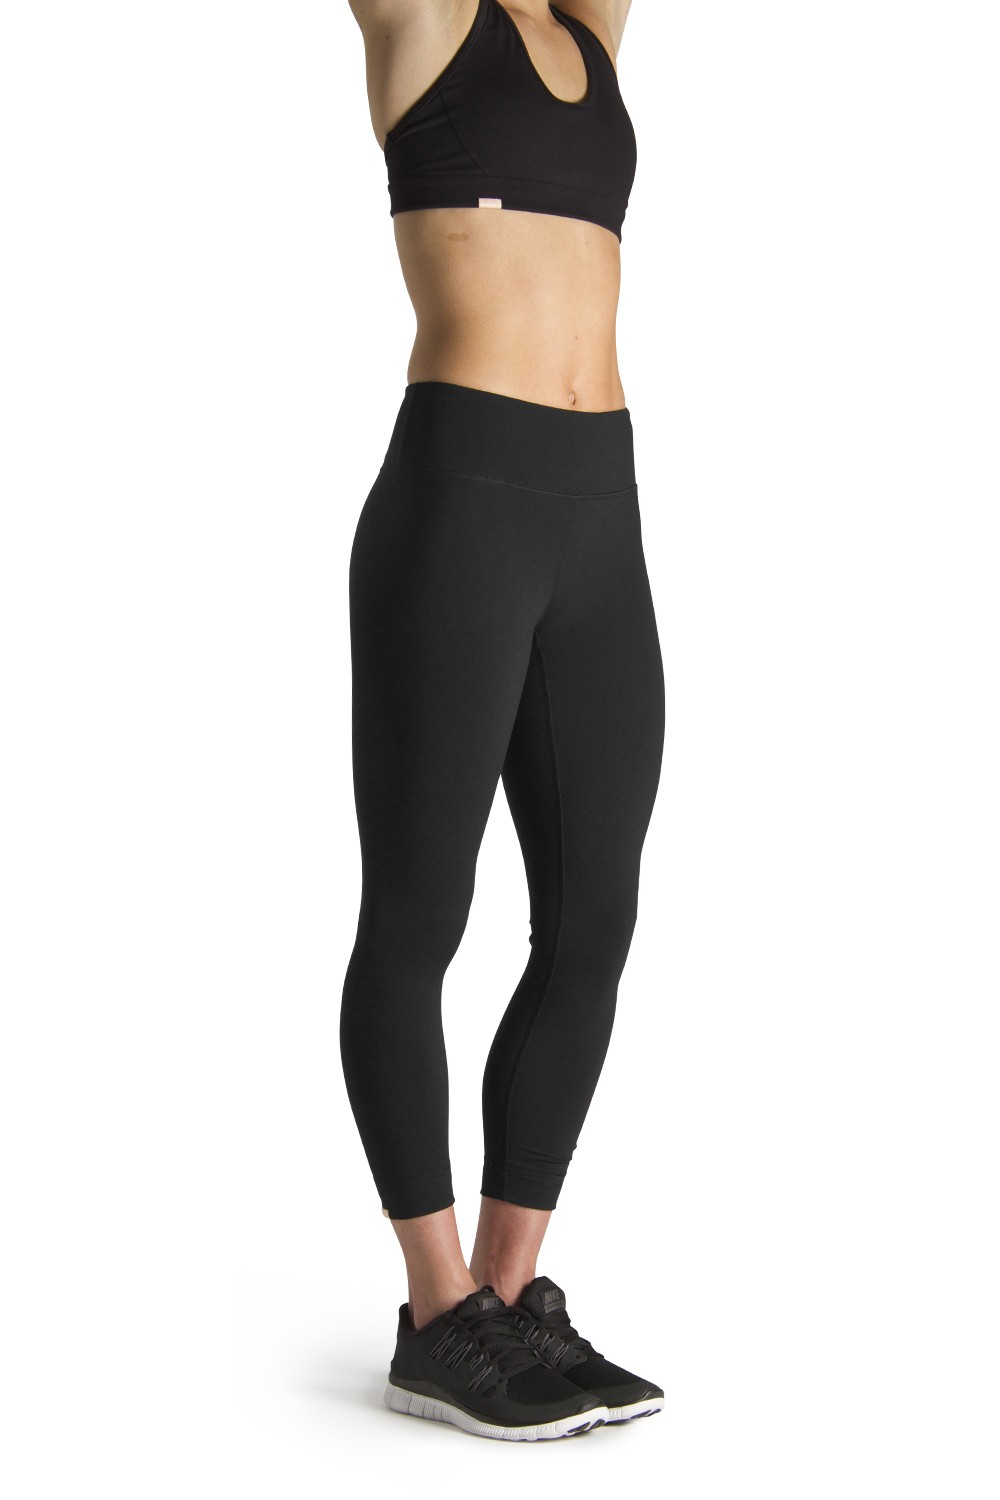 Suprima Hi Rise 7/8 Legging Women's Bottoms